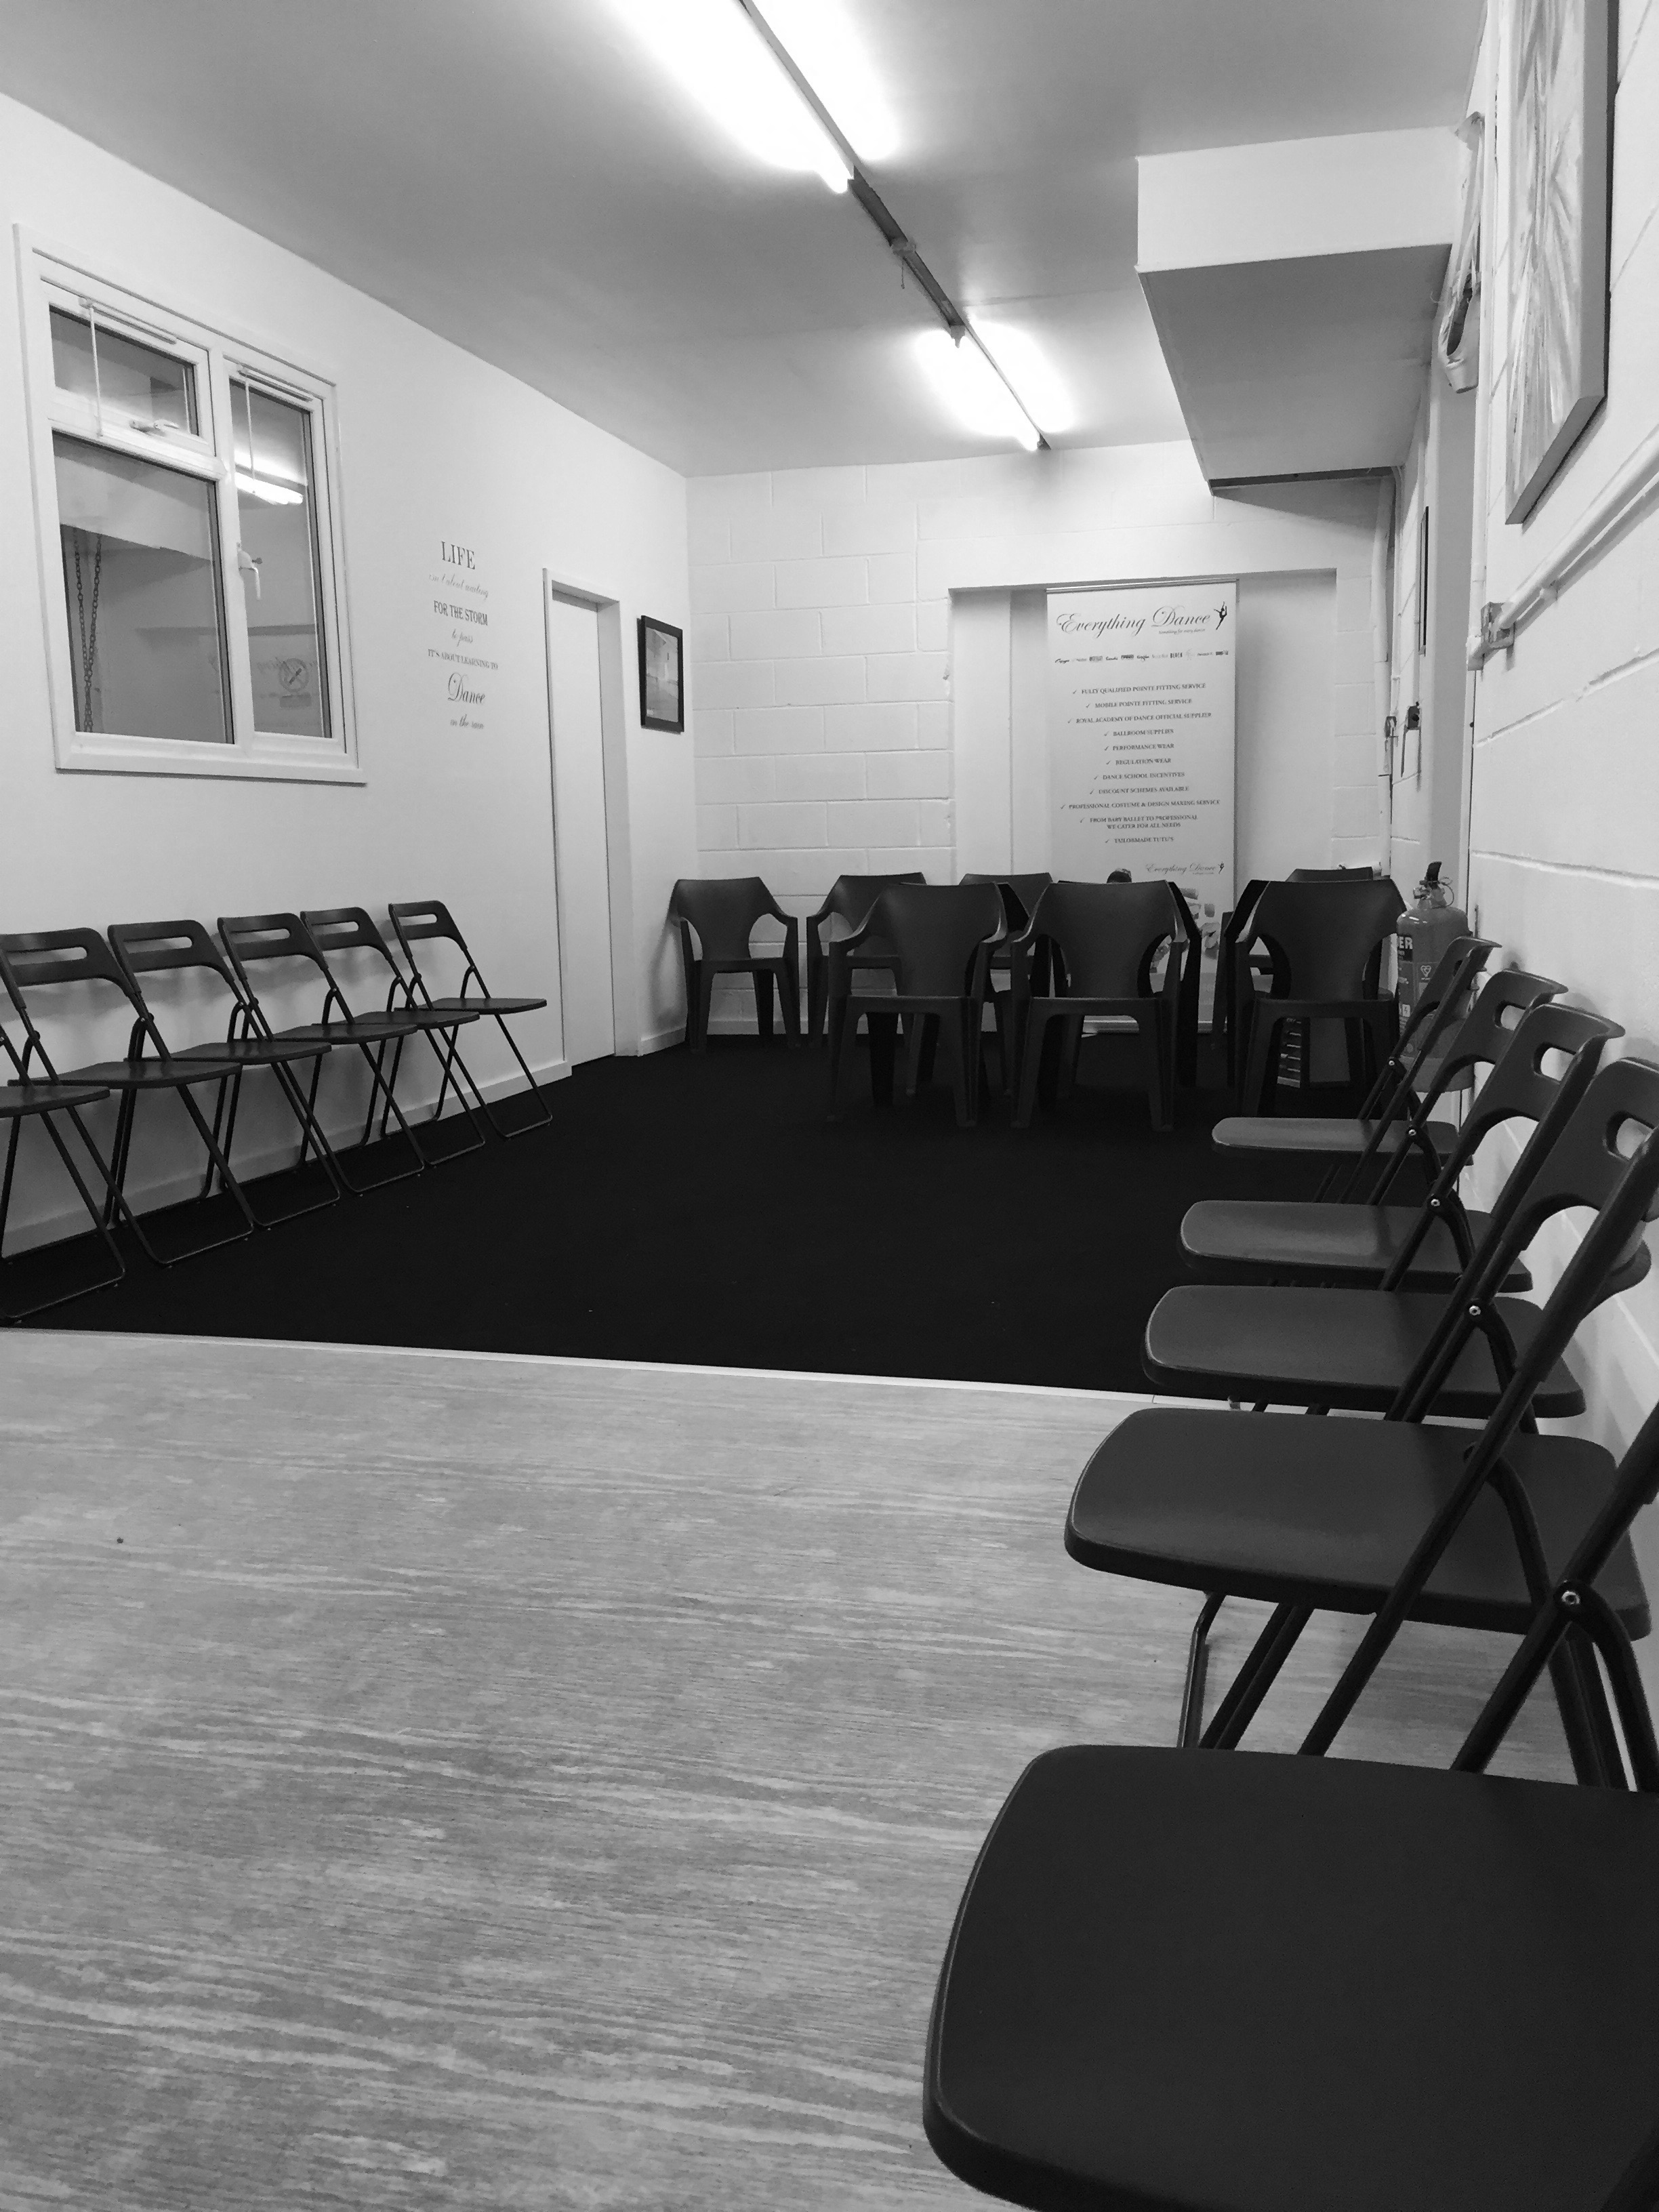 Waiting-Area-Allegro-Theatre-Dance-Academy.jpg